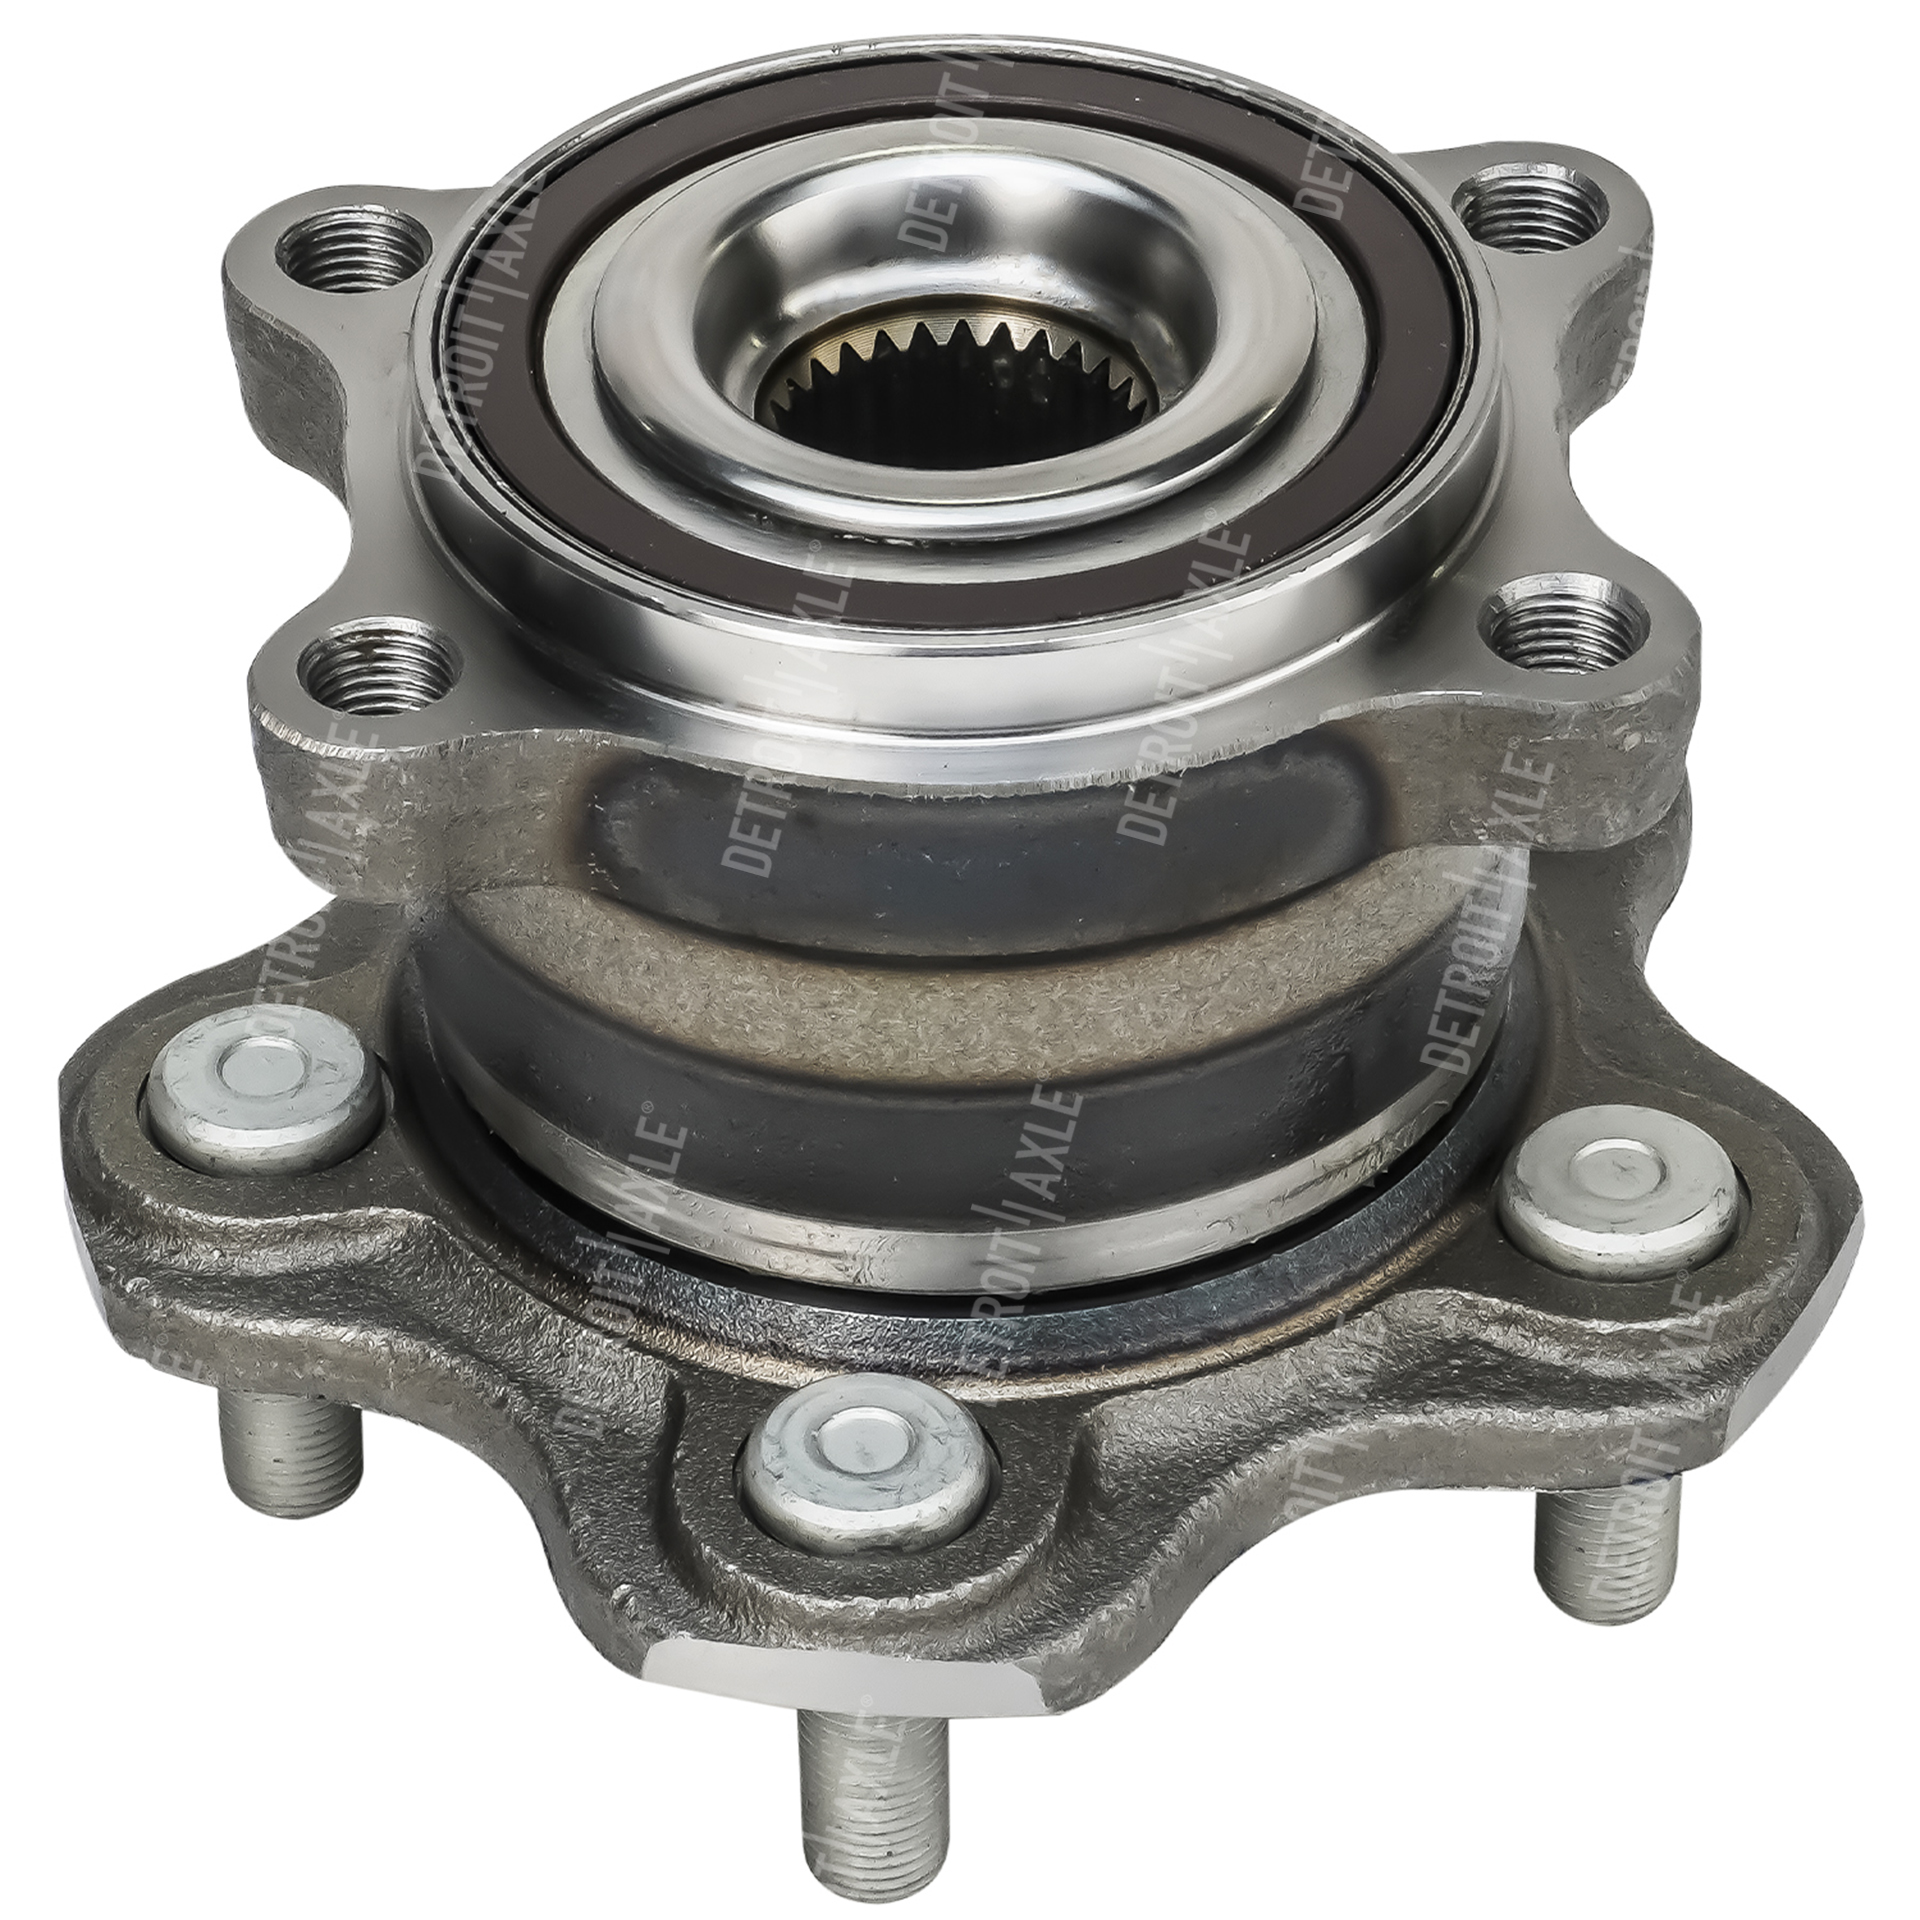 AWD Rear Wheel Hub & Bearing #512363 5 lug w/ABS Nissan Murano